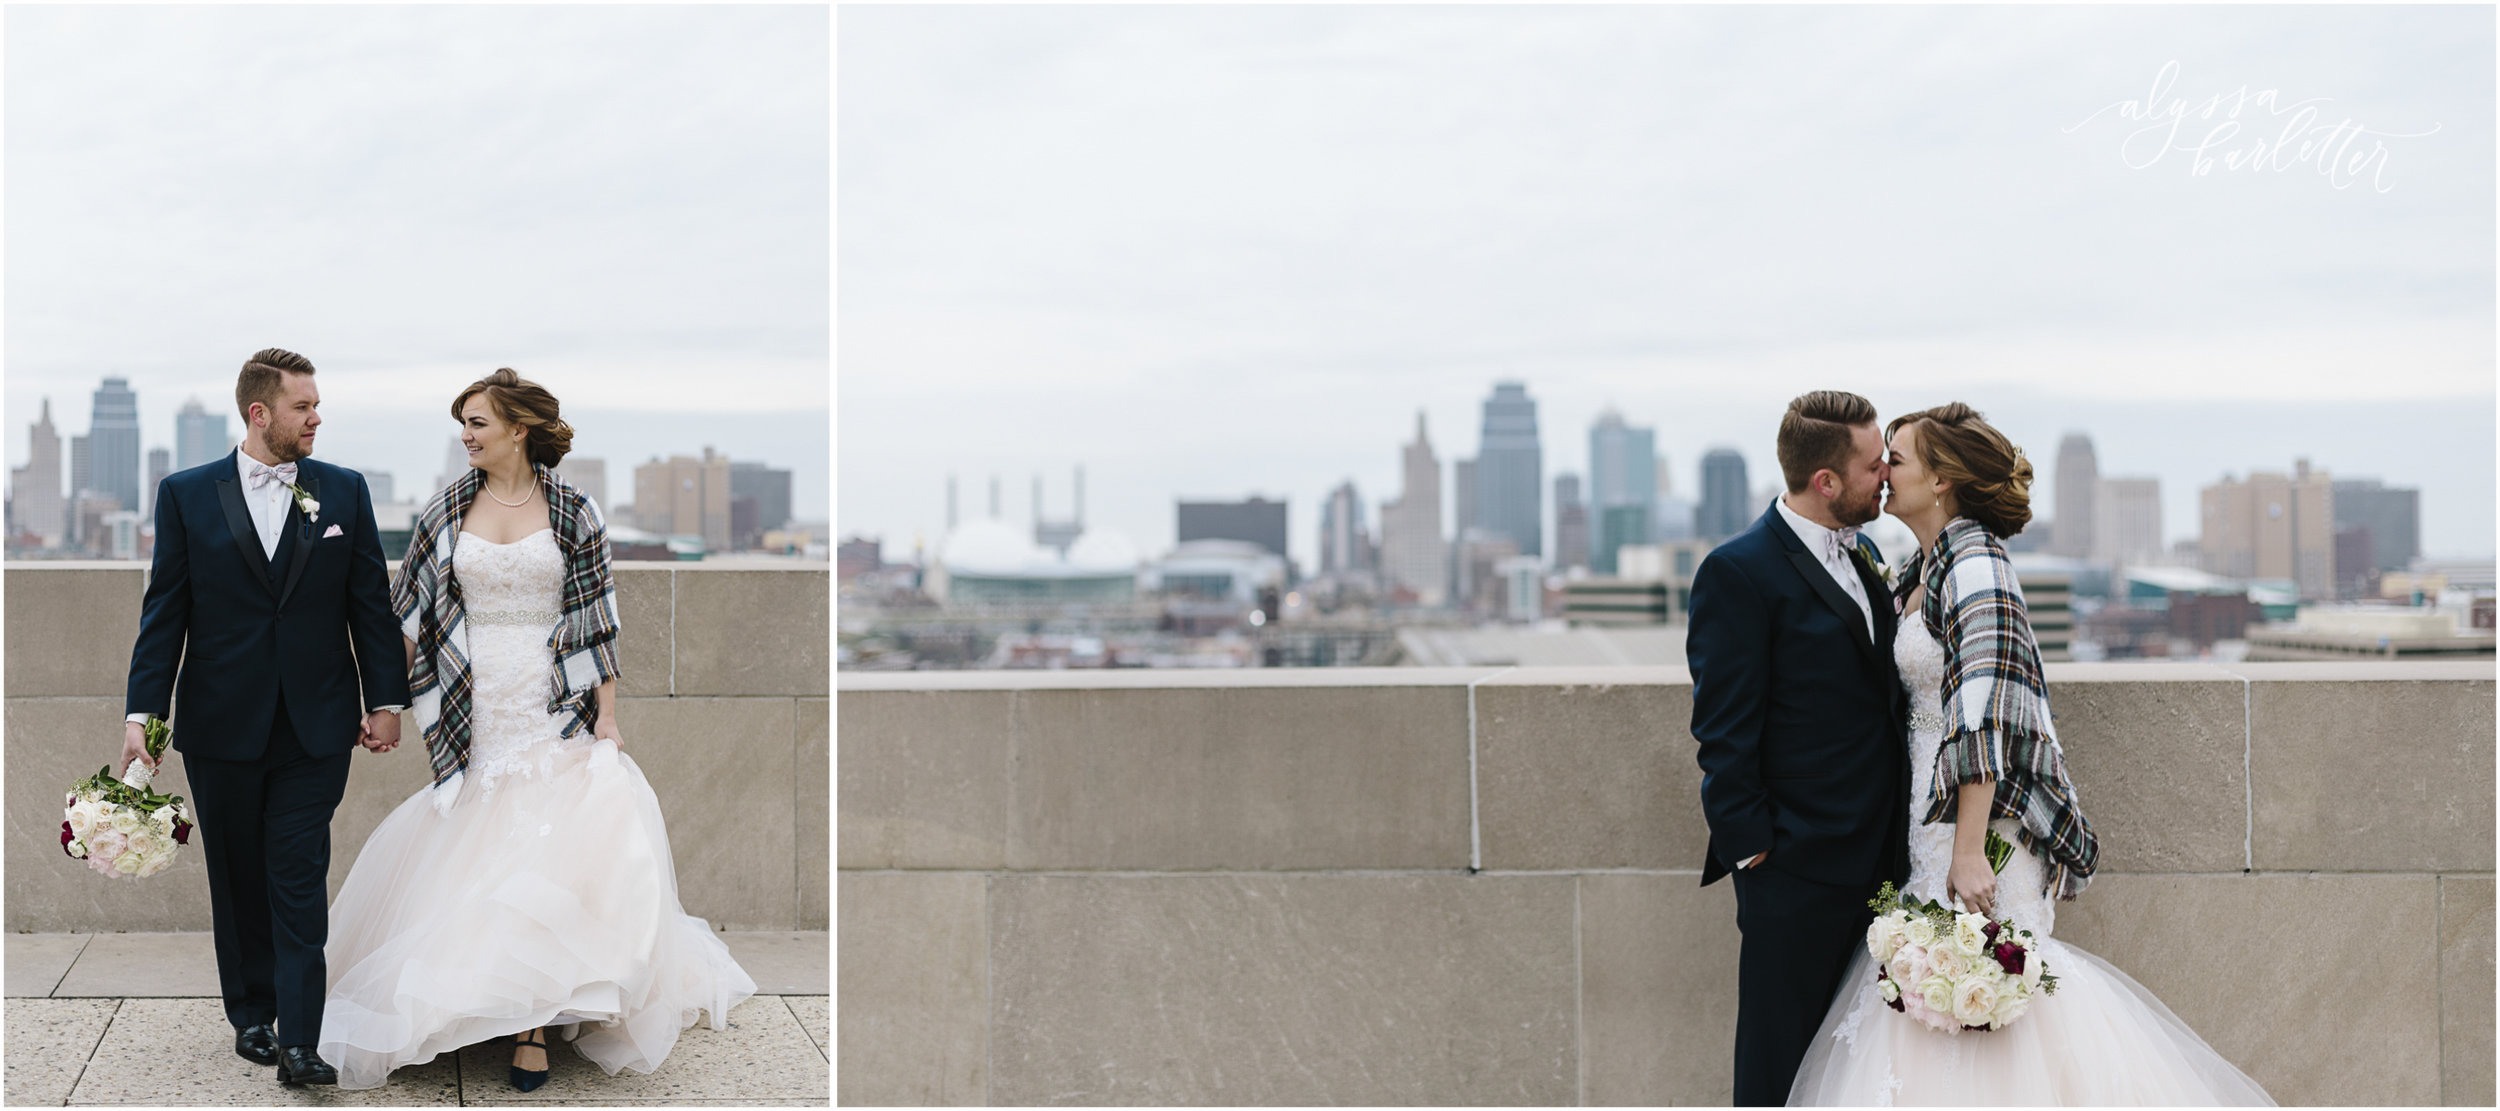 alyssa barletter photography kansas city winter wedding studio dan meiners pennway place jennie and dave-1-22.jpg